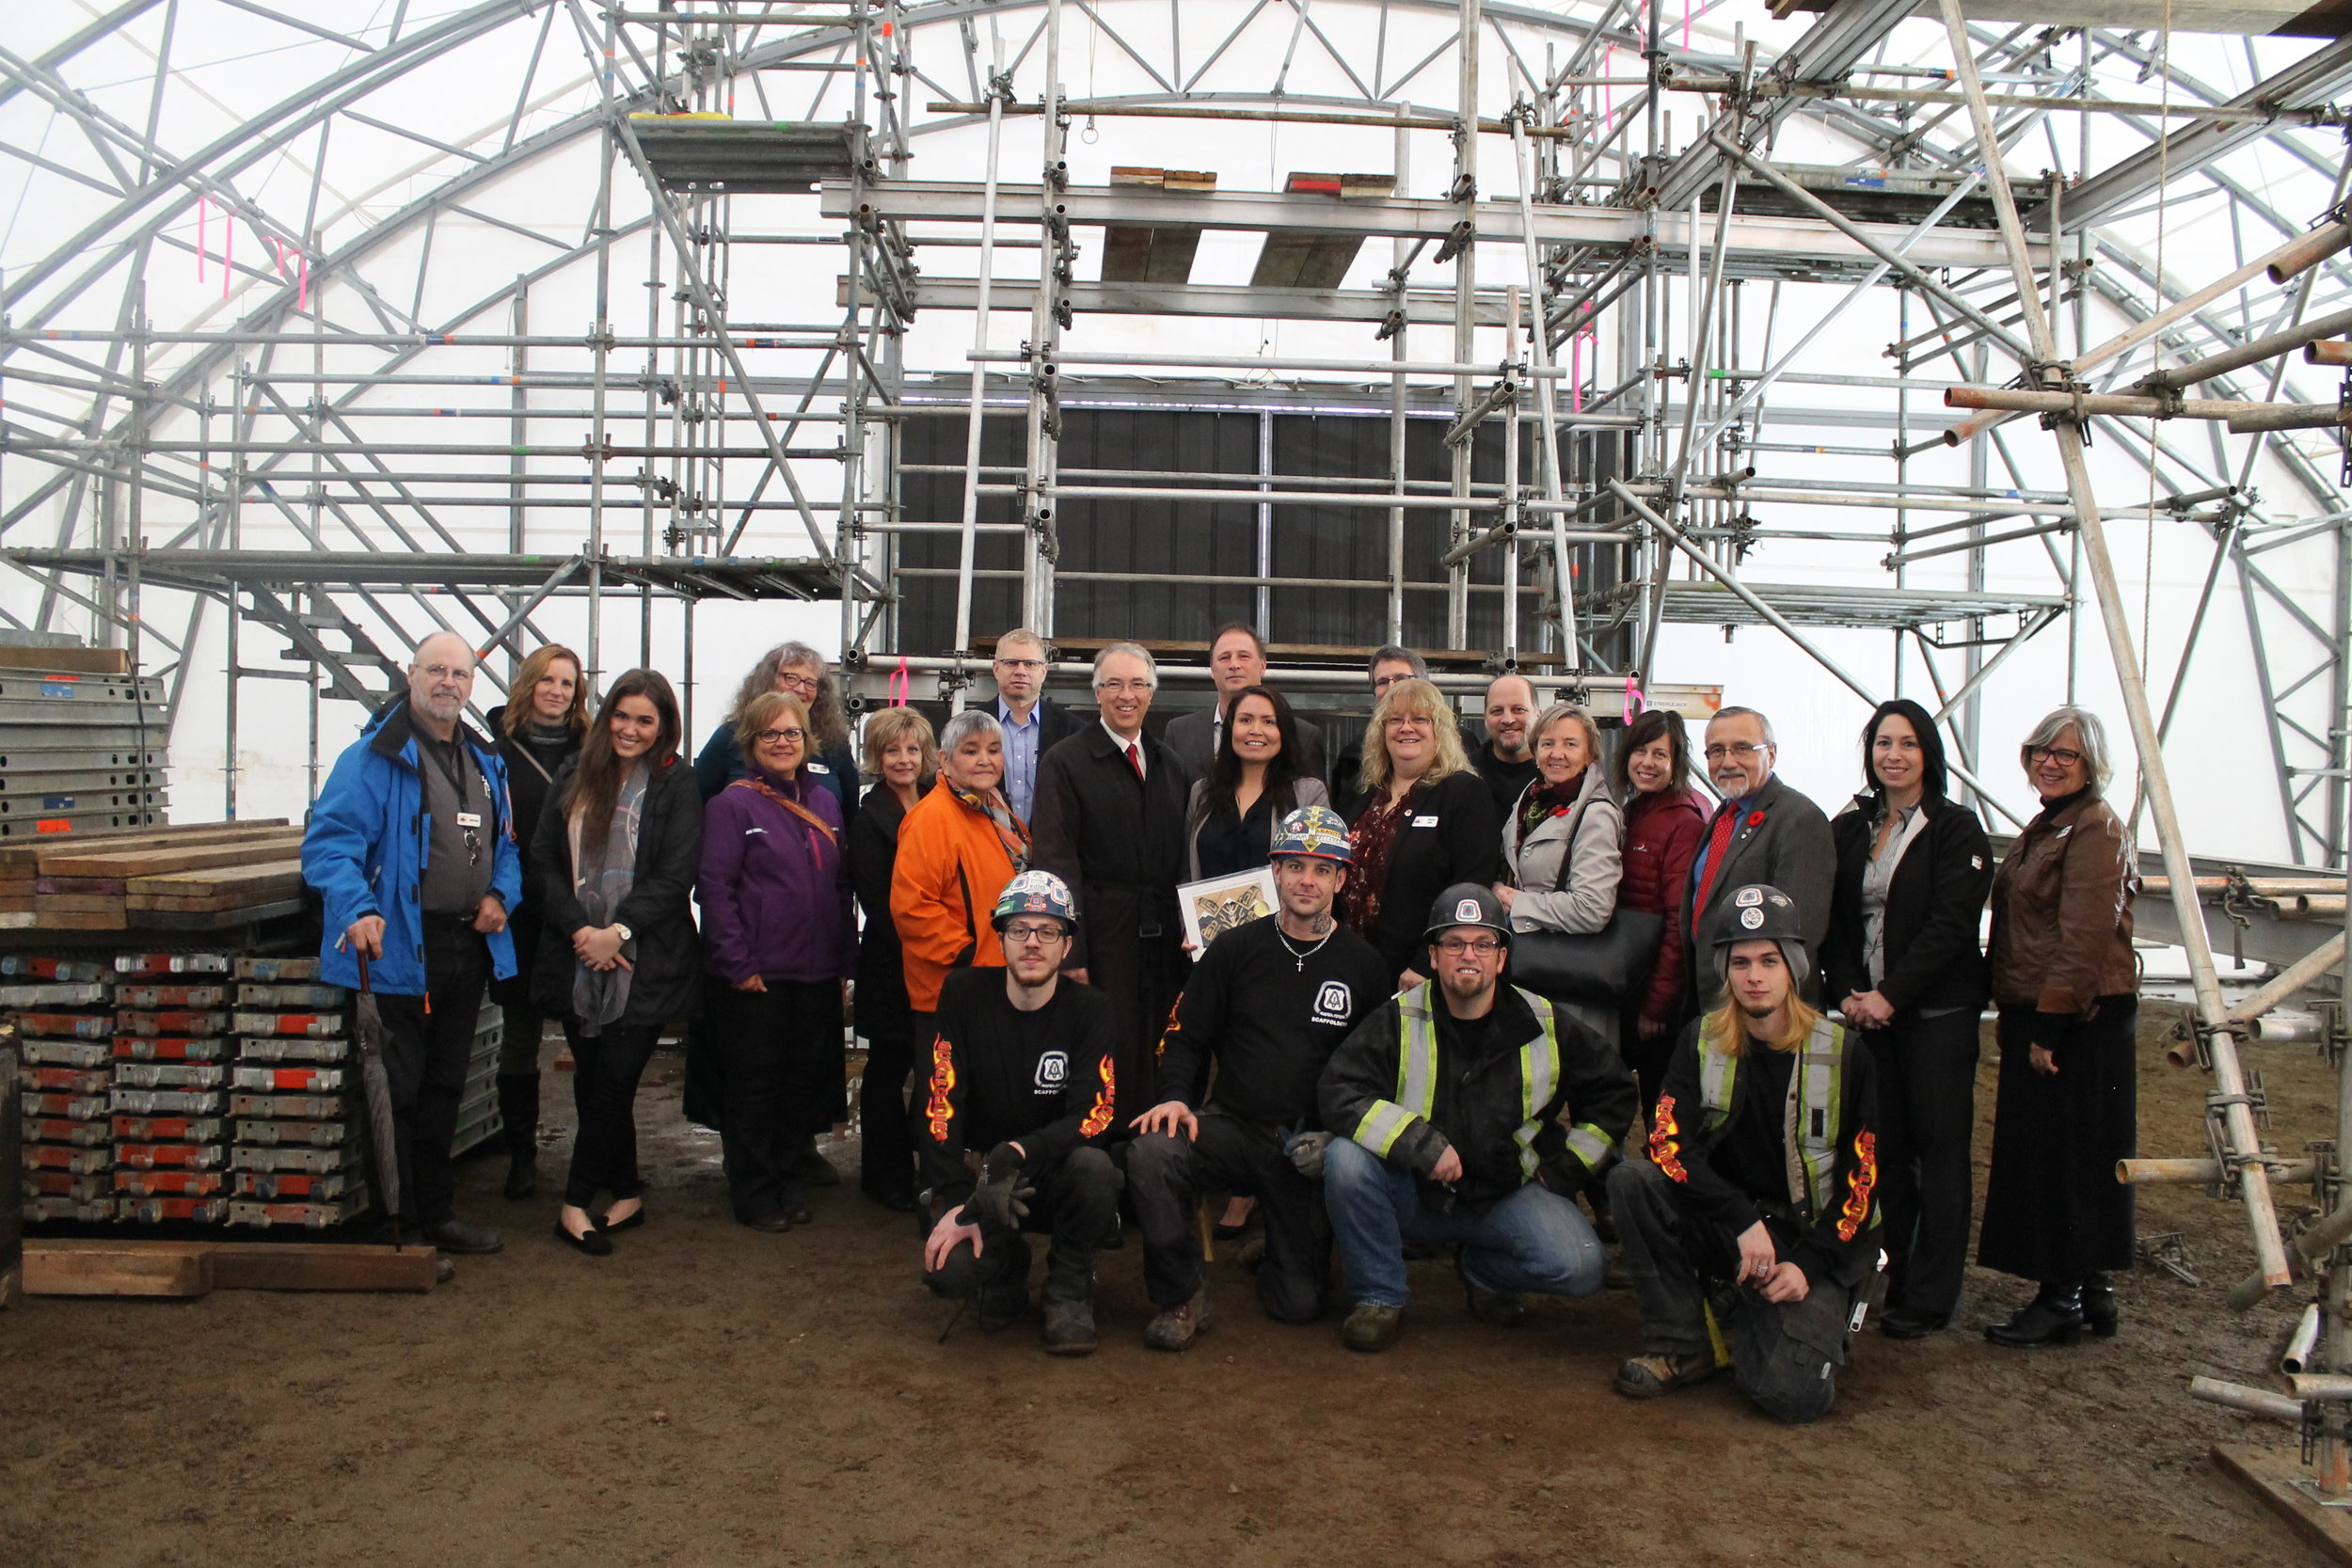 November 8, 2016 - Scaffolding Level 2 Training supported in part from Ministry of Aboriginal Relations & Reconciliation, Haisla Nation, KVI and BC Regional Council of Carpenters.